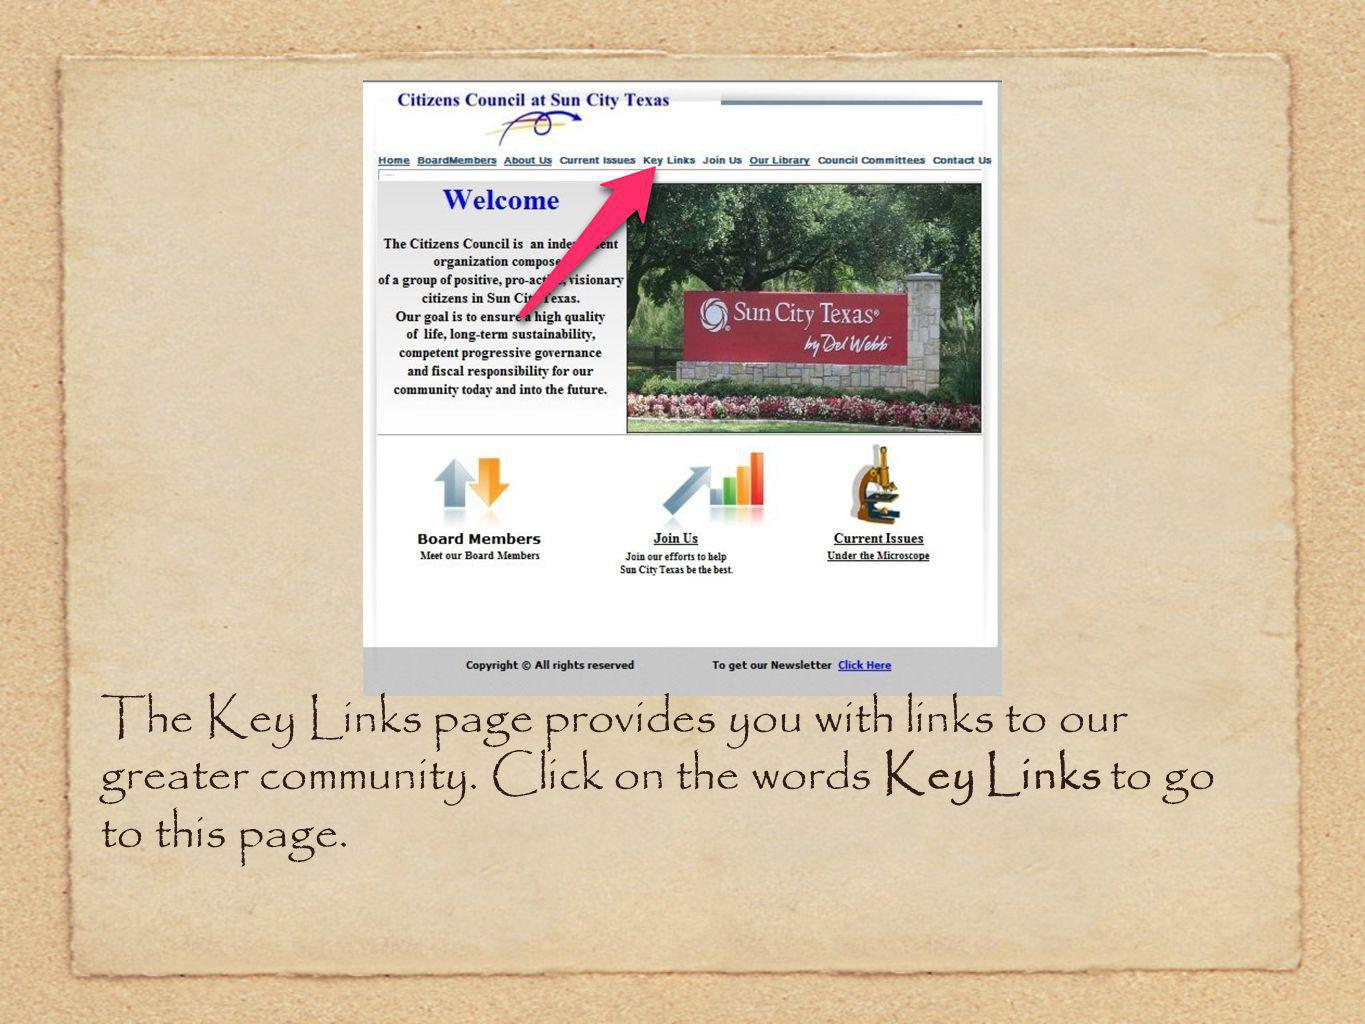 The Key Links page provides you with links to our greater community.